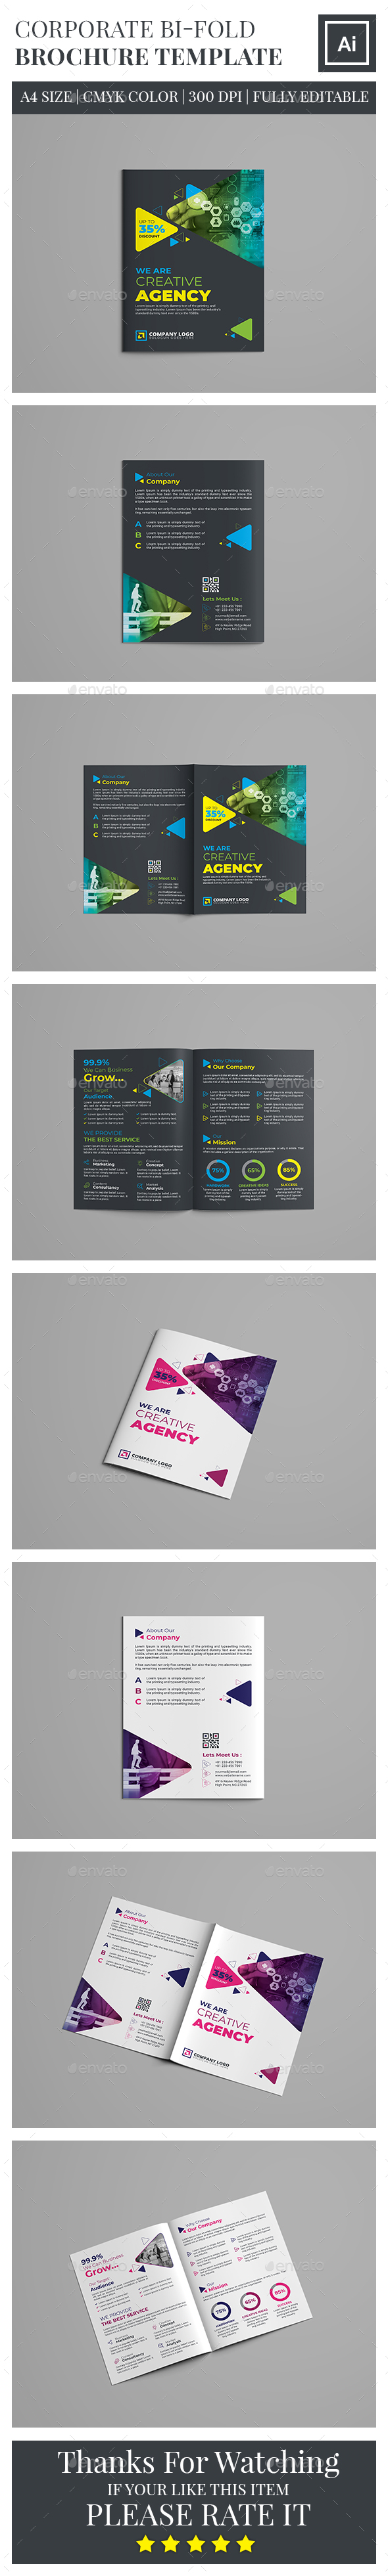 Corporate Bifold Brochure Template By Zahidhossainalif GraphicRiver - Corporate brochure template